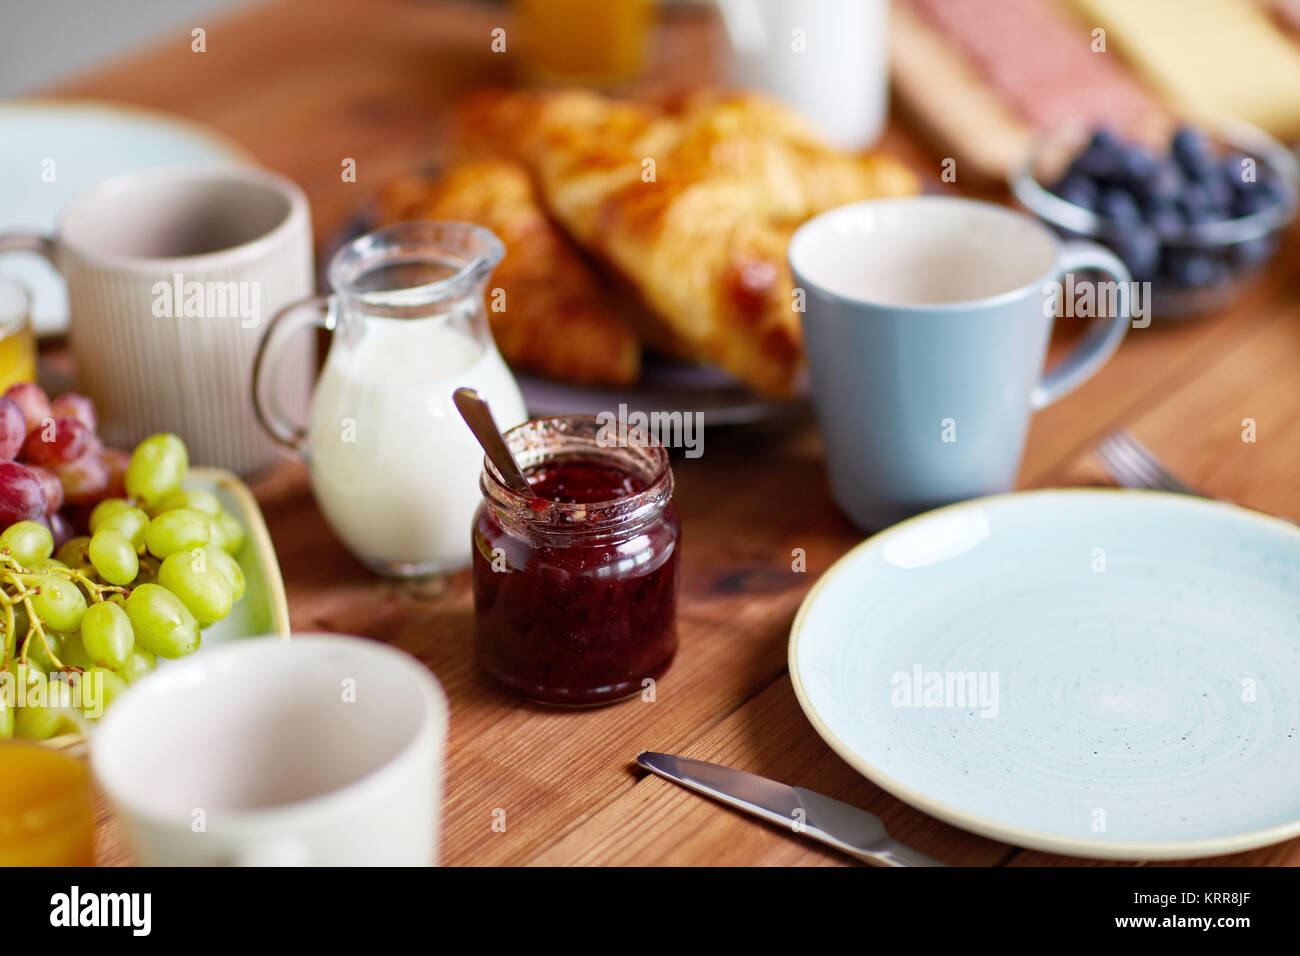 jar with jam on wooden table at breakfast - Stock Image